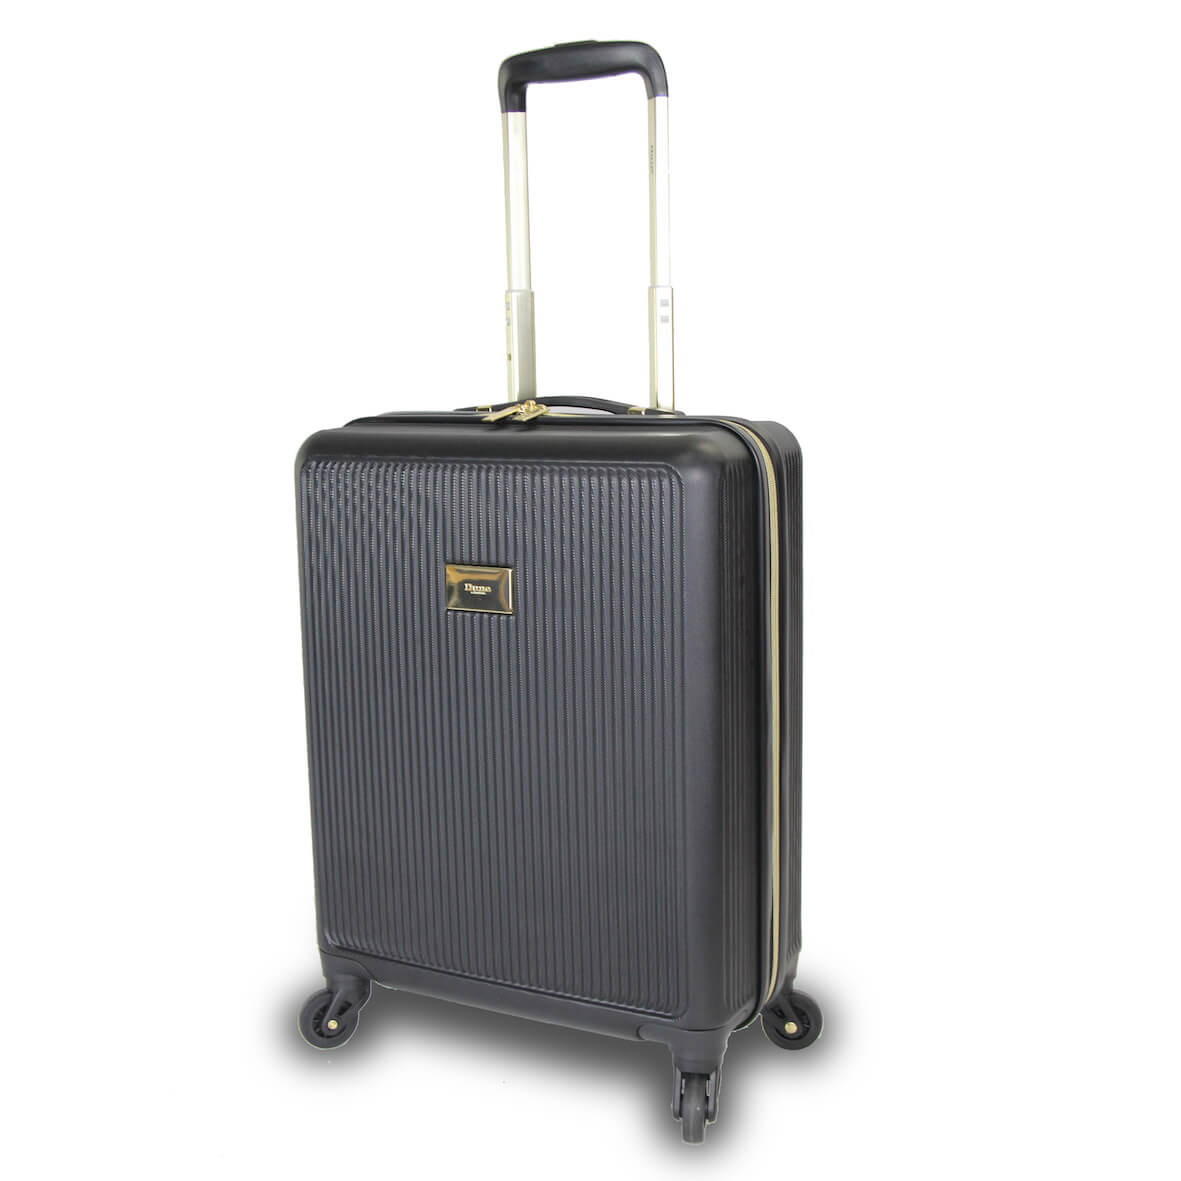 Dune London Tolive 55cm 4-Wheel Cabin Case